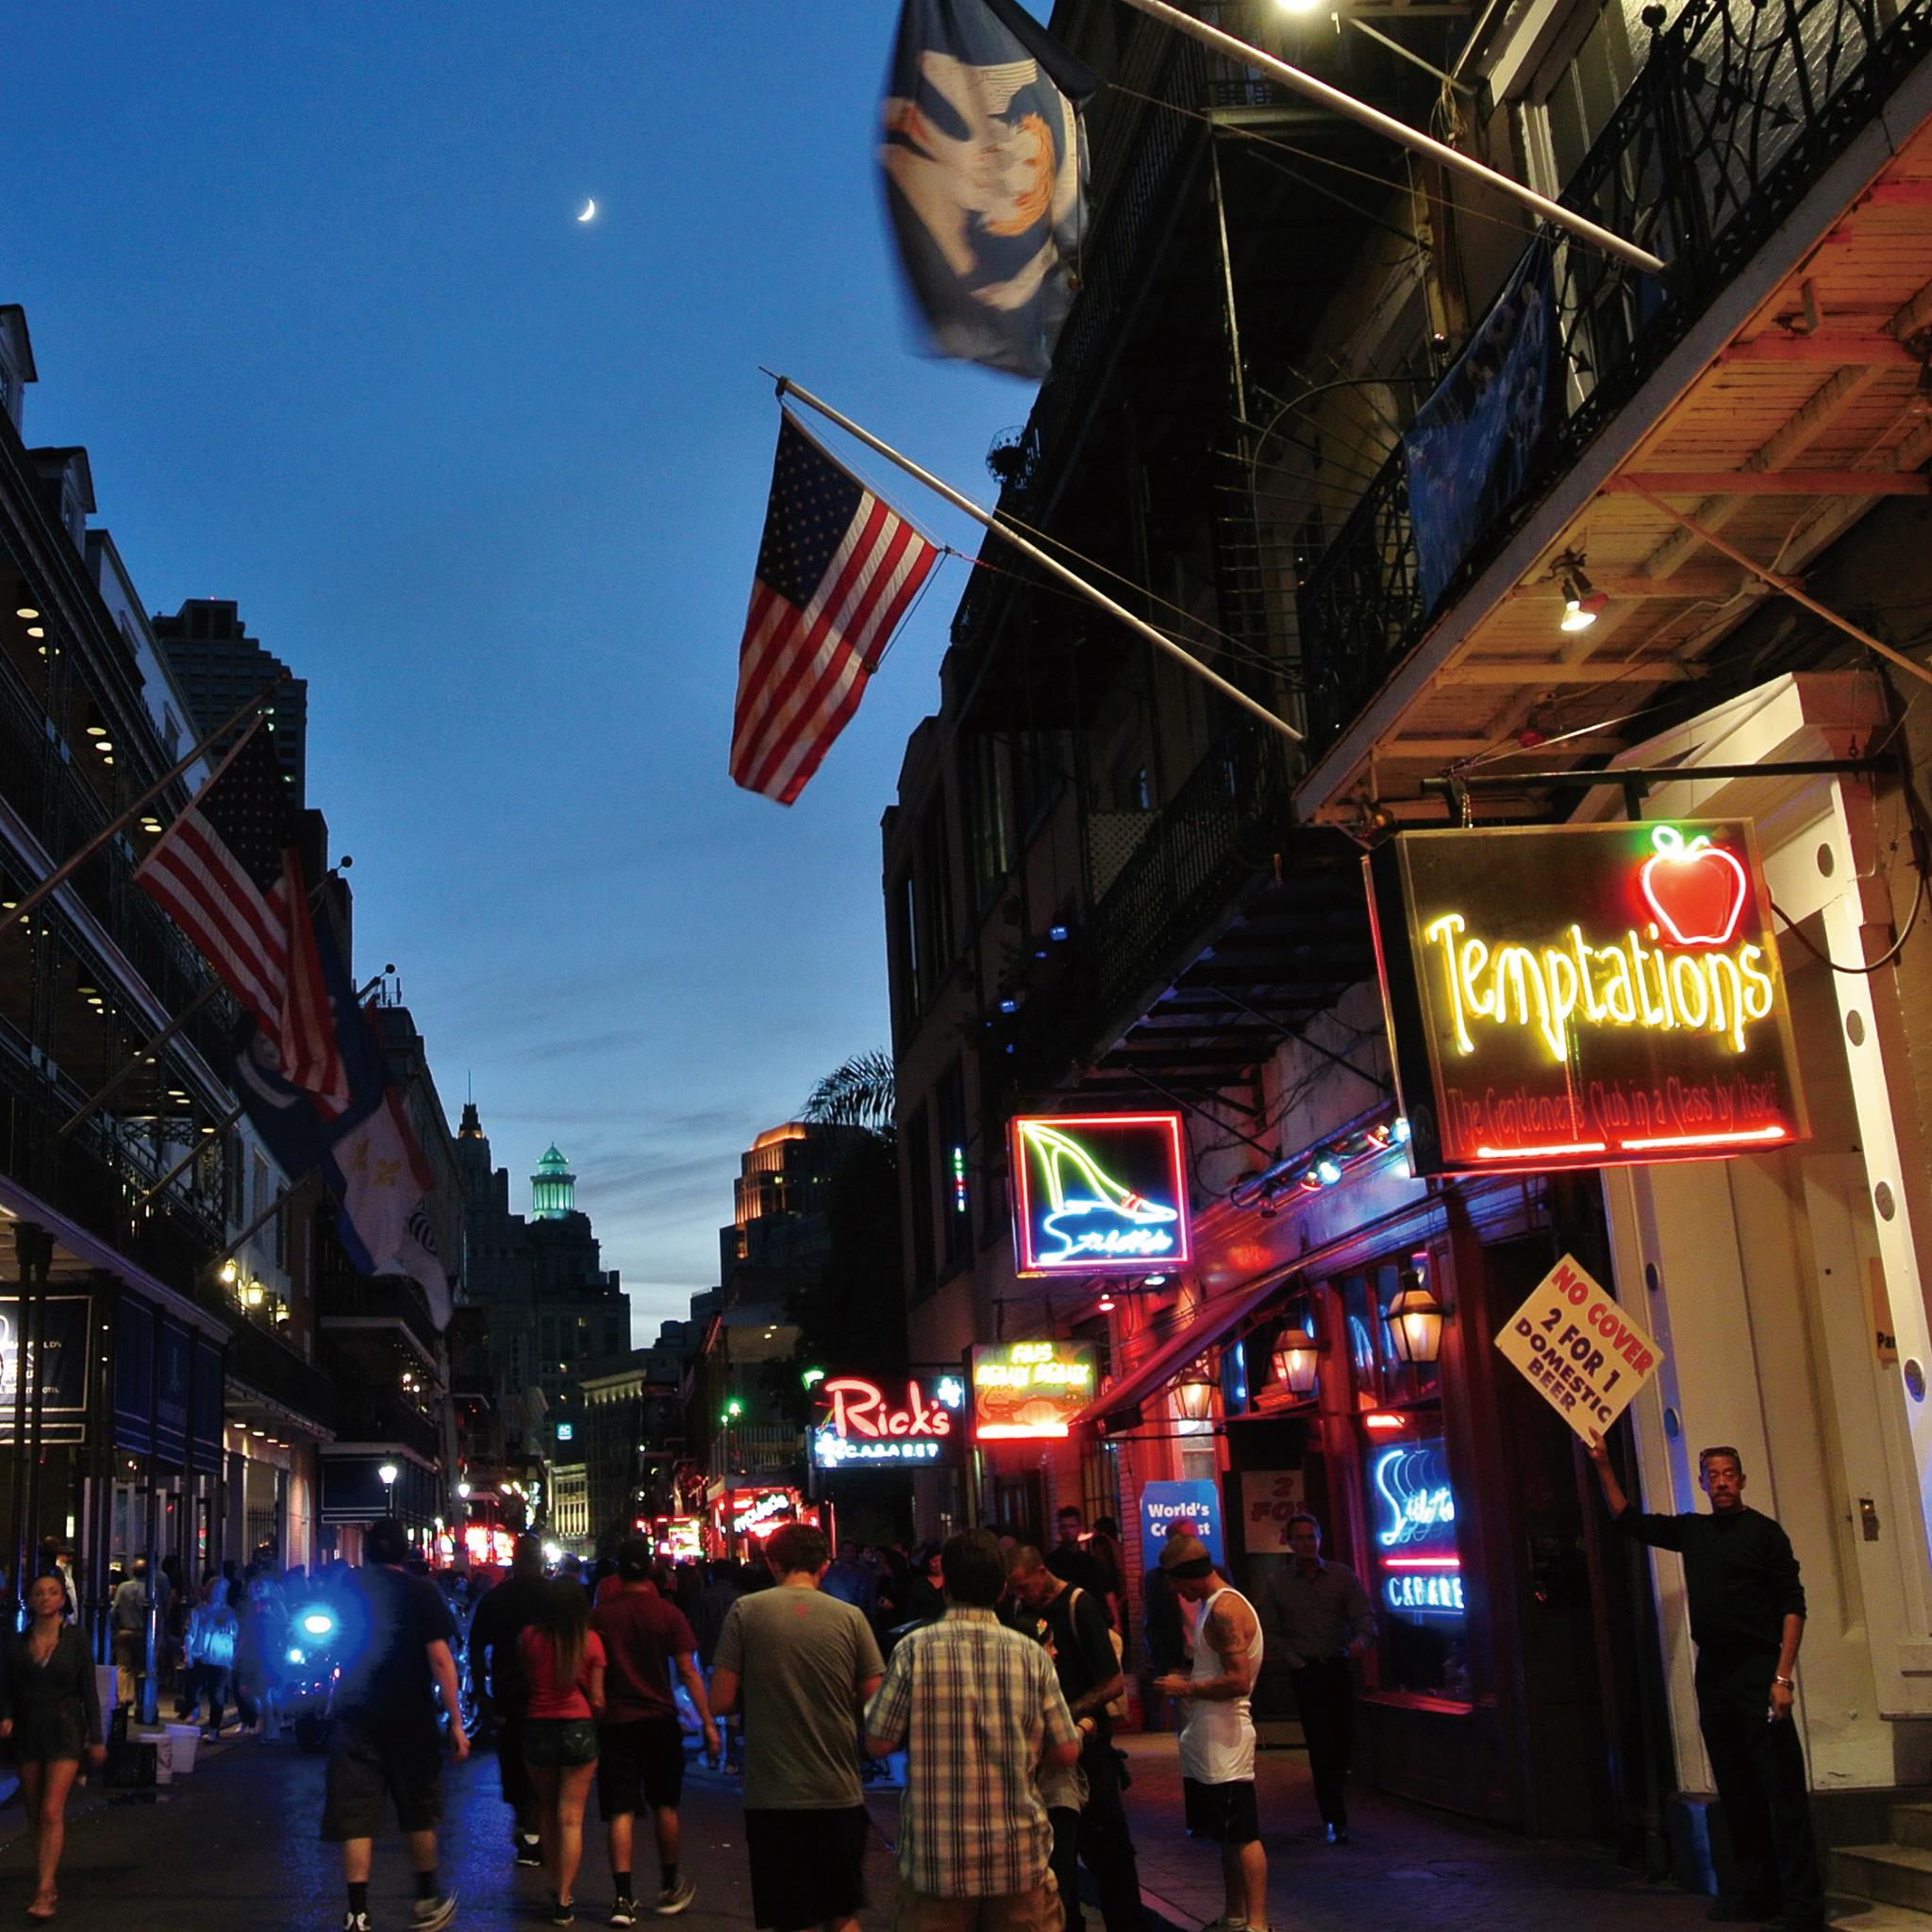 new-orleans-architectural-photography-urban-landscape_22334062800_o.jpg